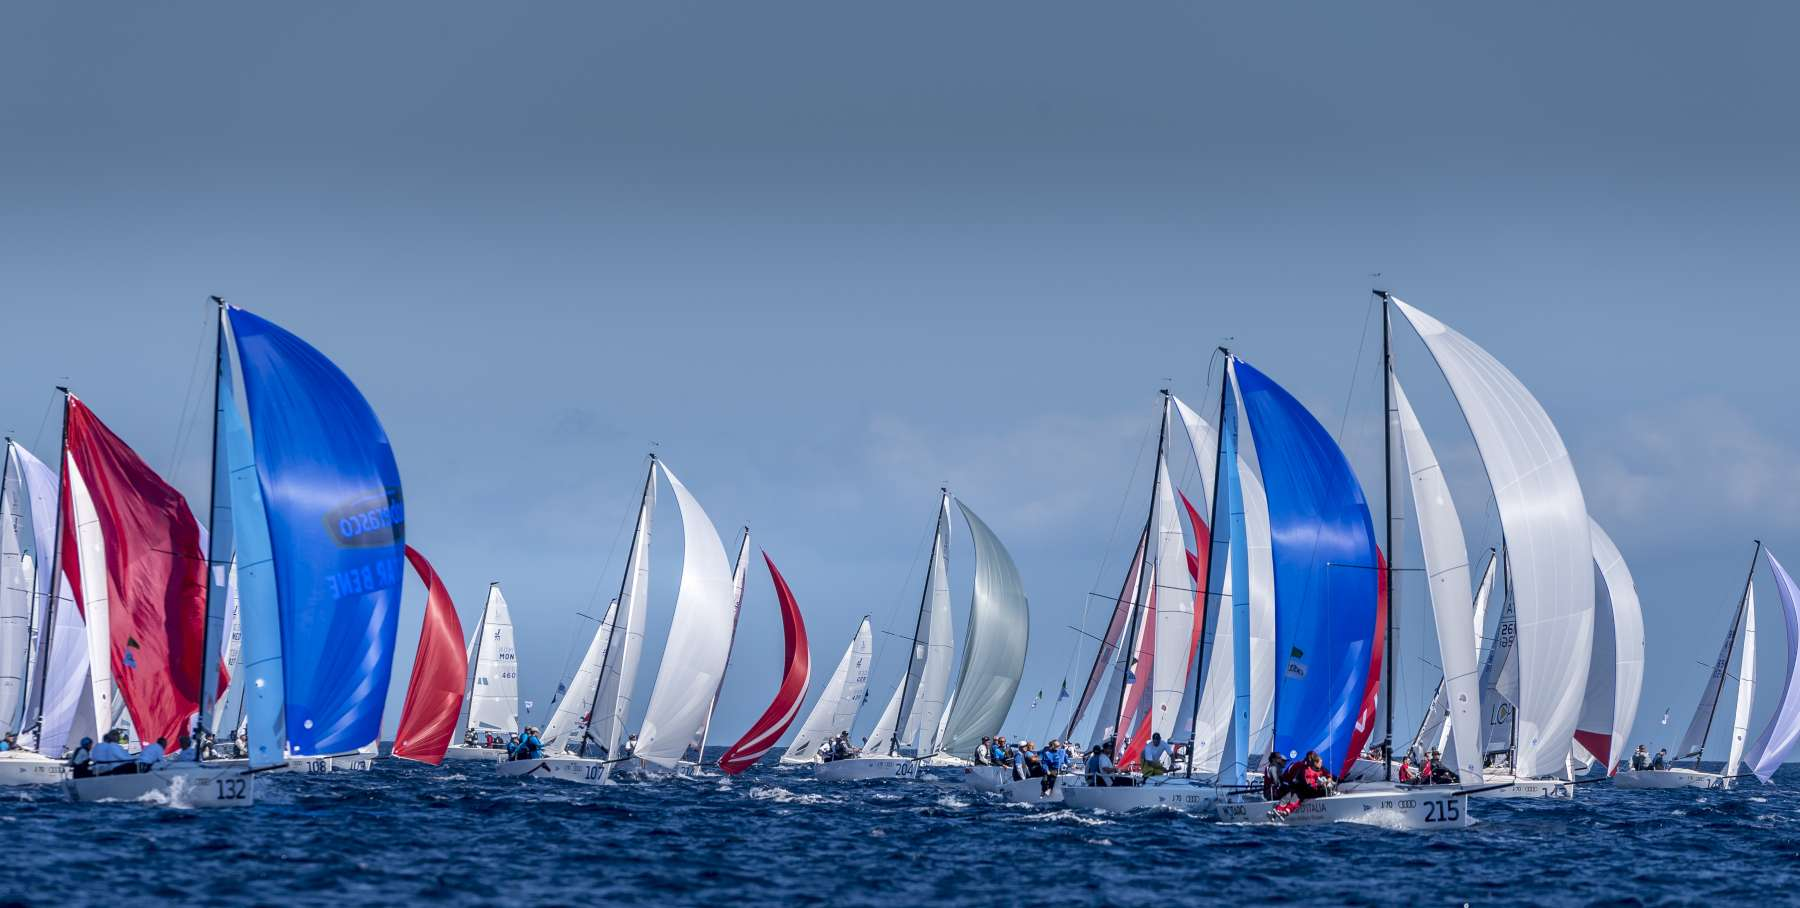 YCCS Sporting Season 2018 Trailer now online - NEWS - Yacht Club Costa Smeralda